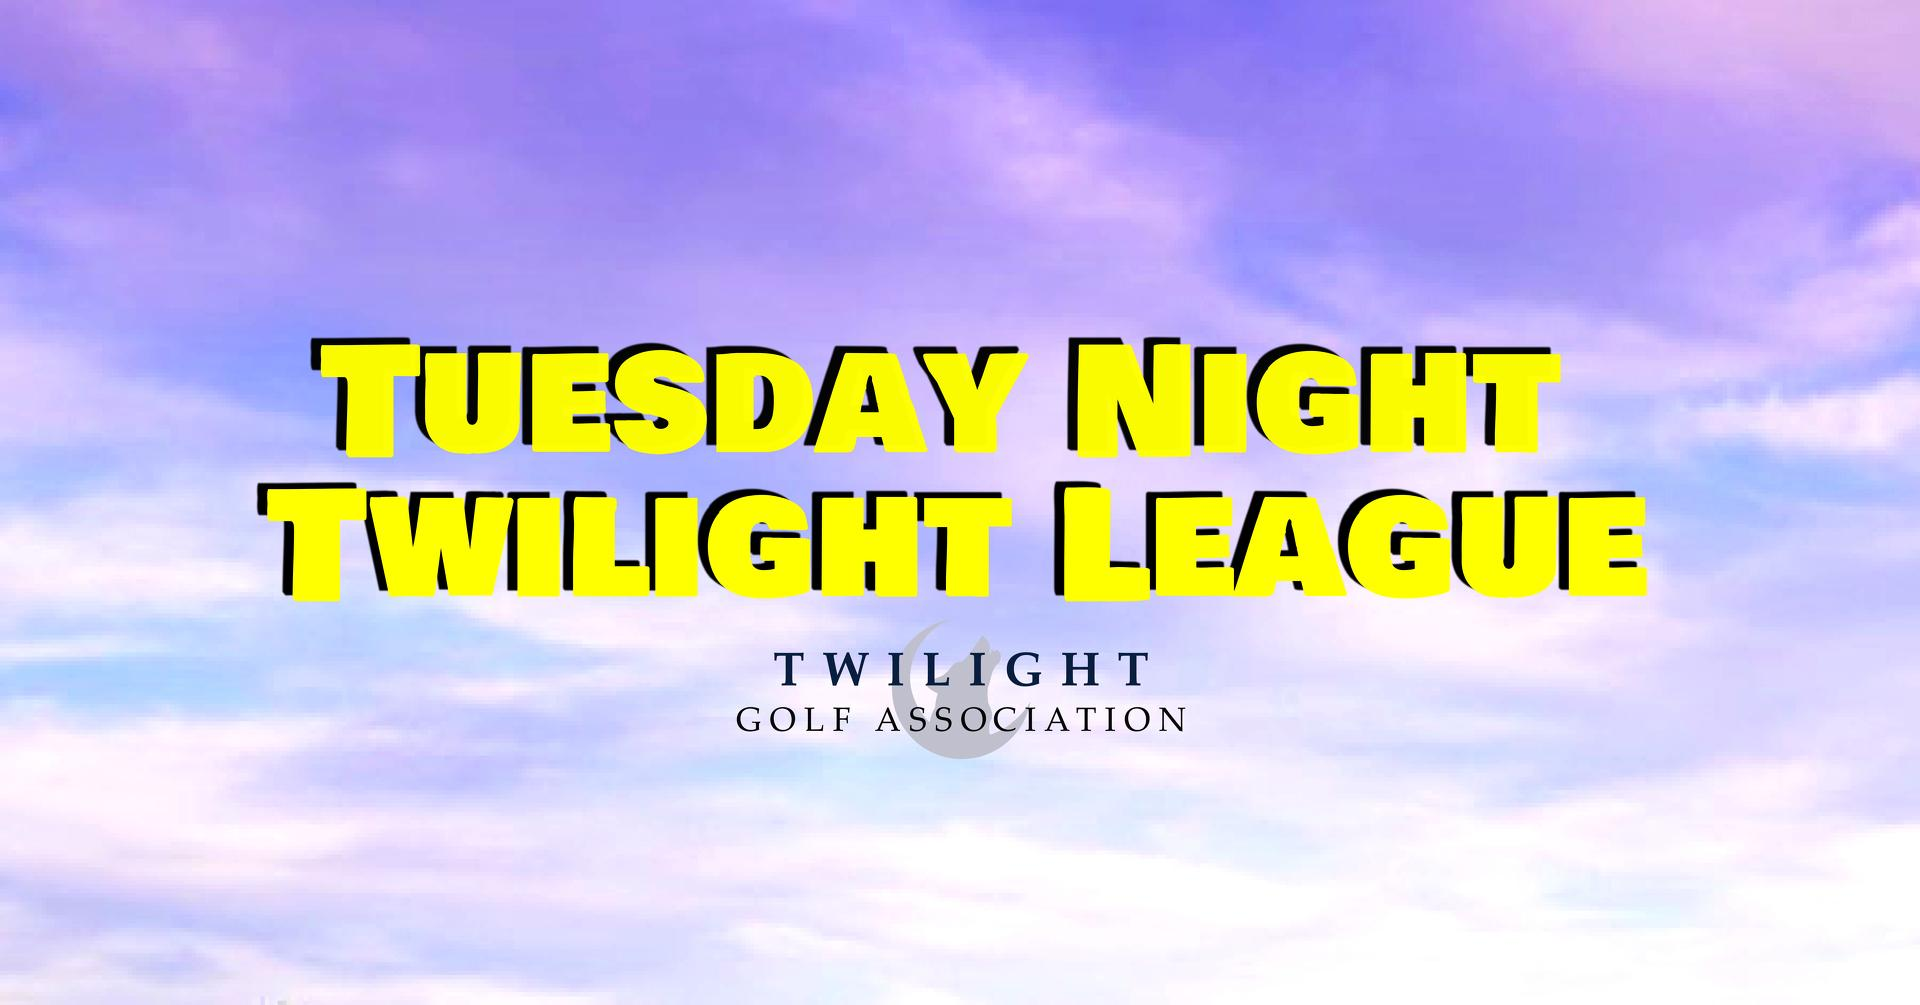 Tuesday Twilight League at Eagle Ridge Golf Club